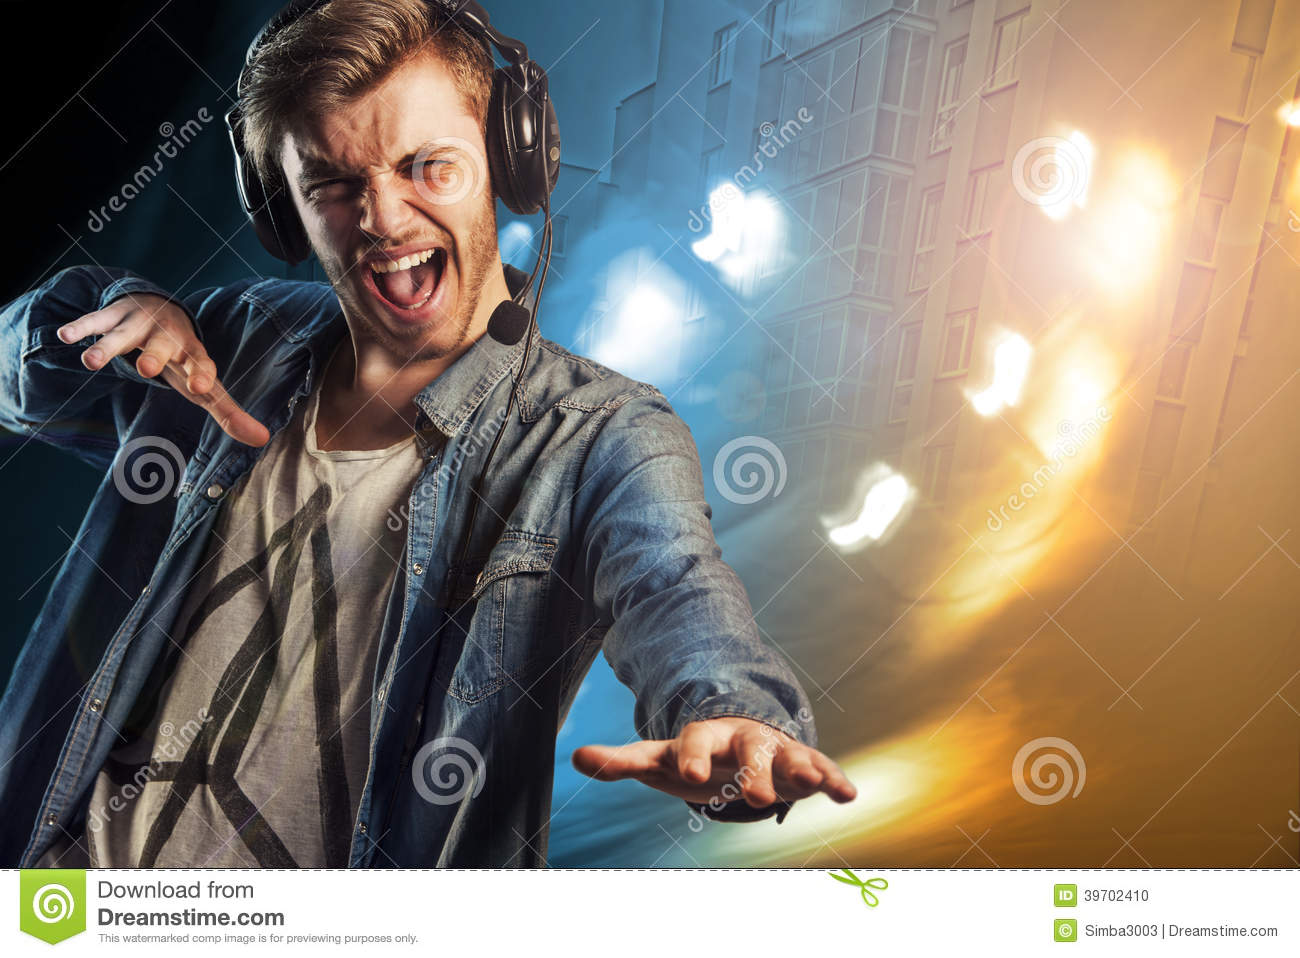 Cool Party Dj Man With Headphones Stock Photo Image